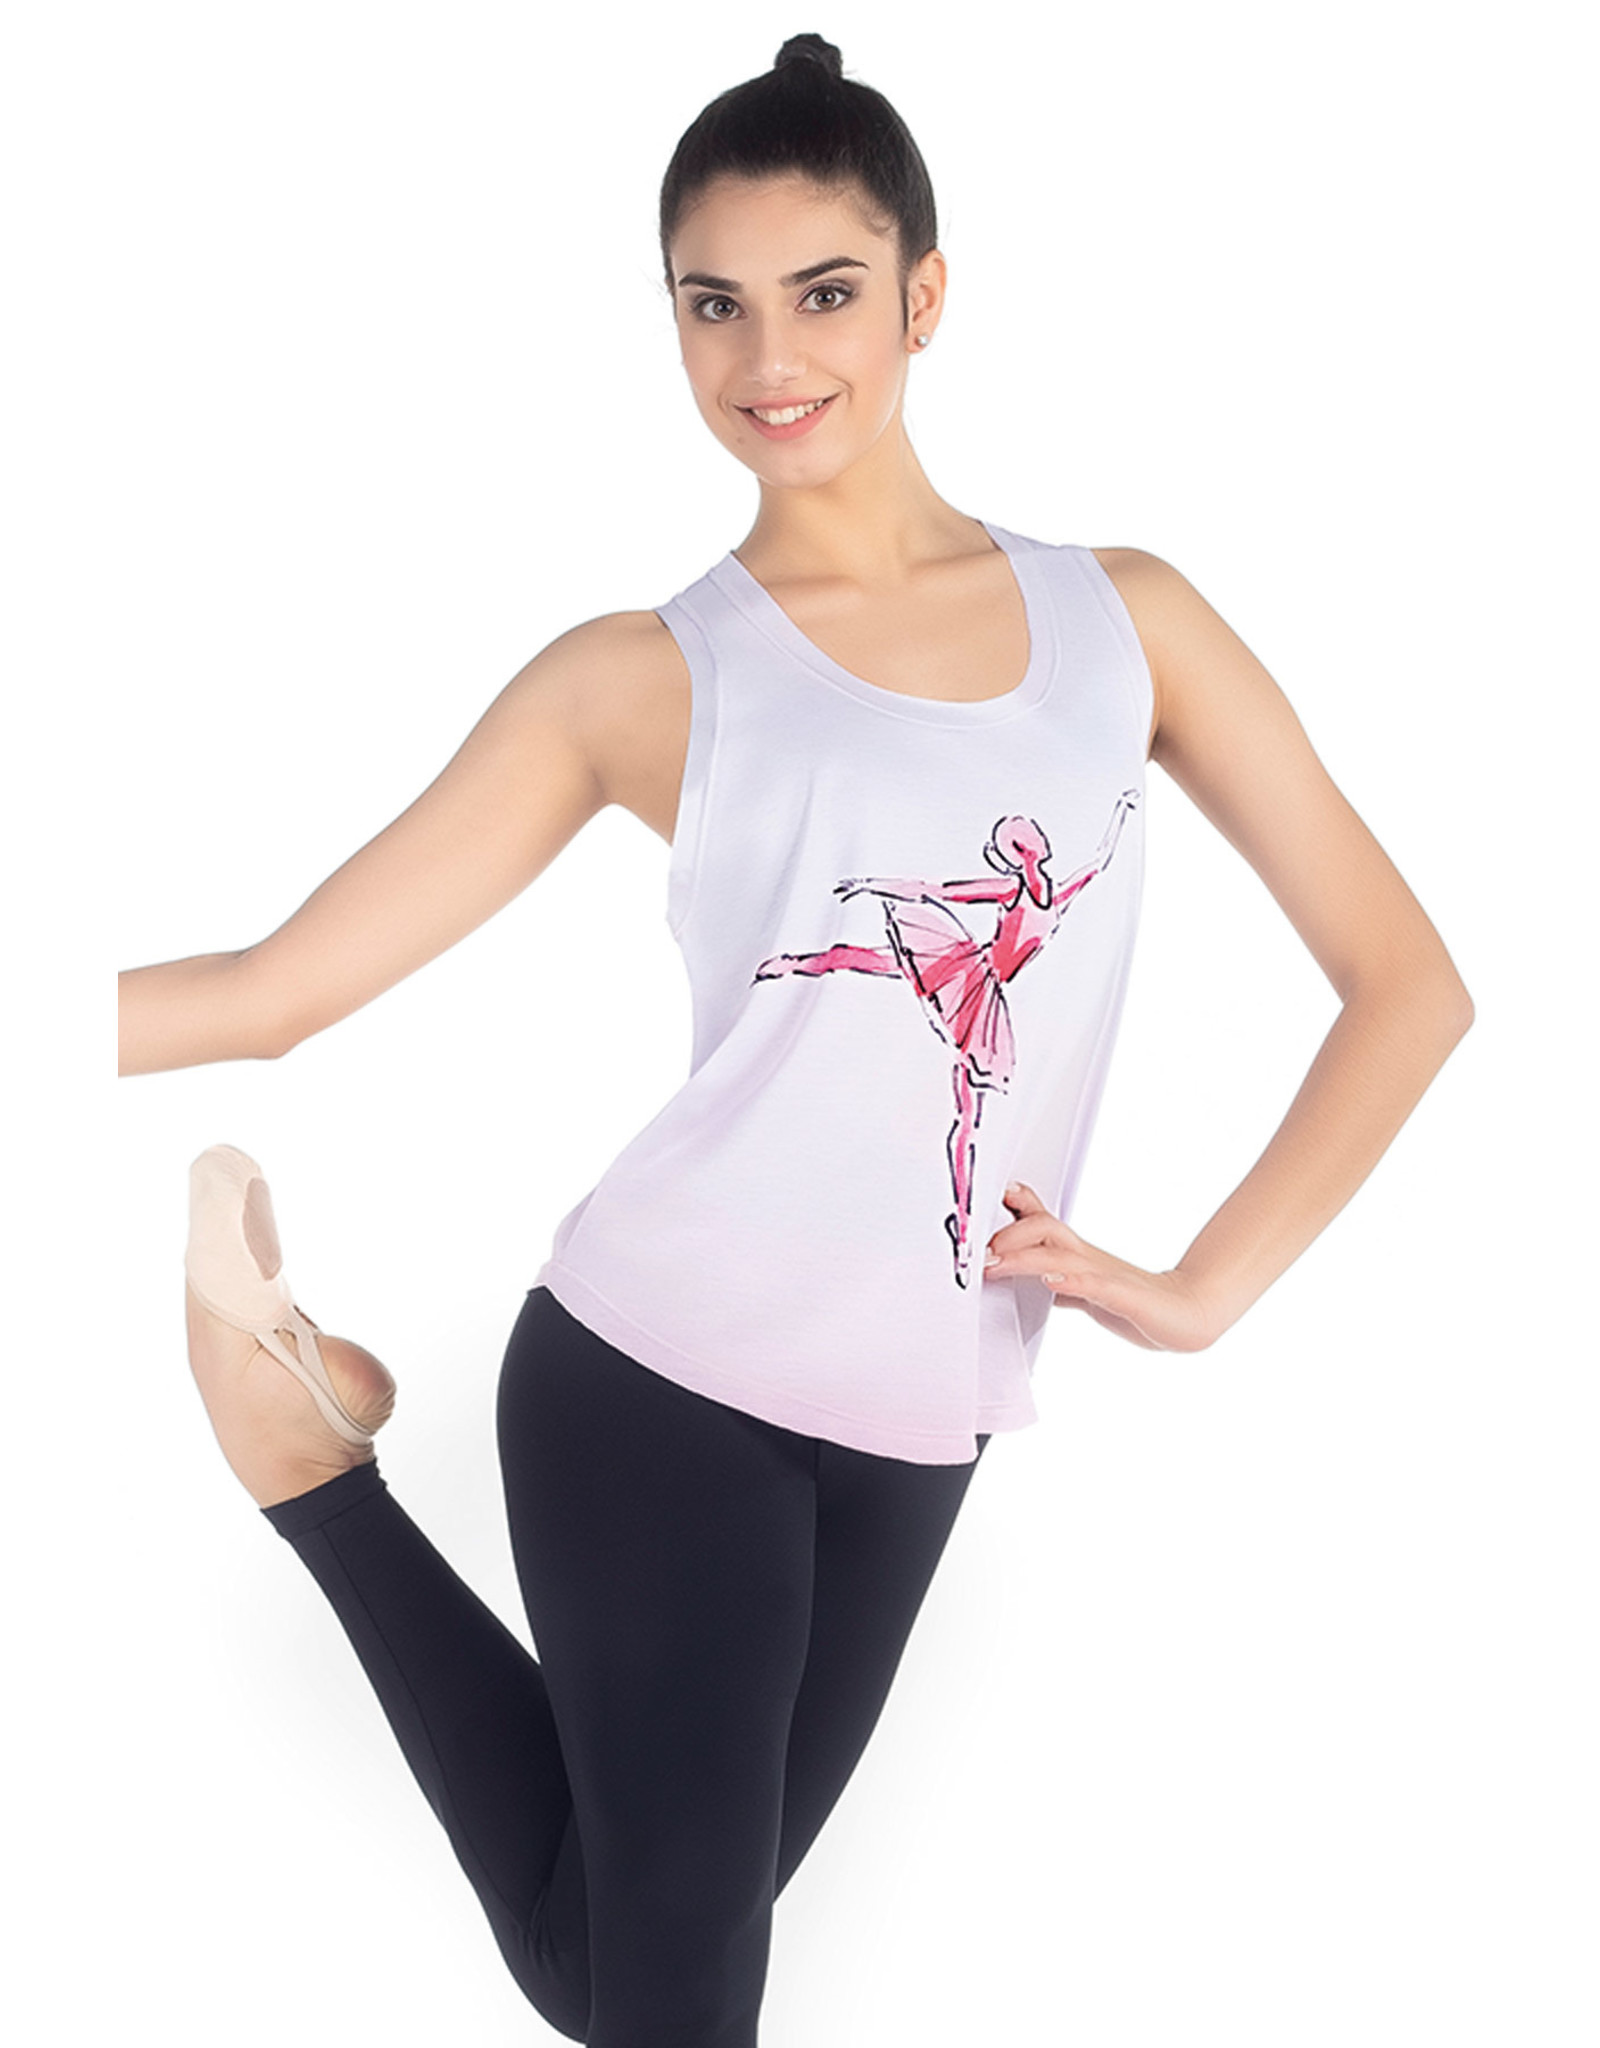 SoDanca SoDanca Adult Ballet Dancer Arebesque Tank